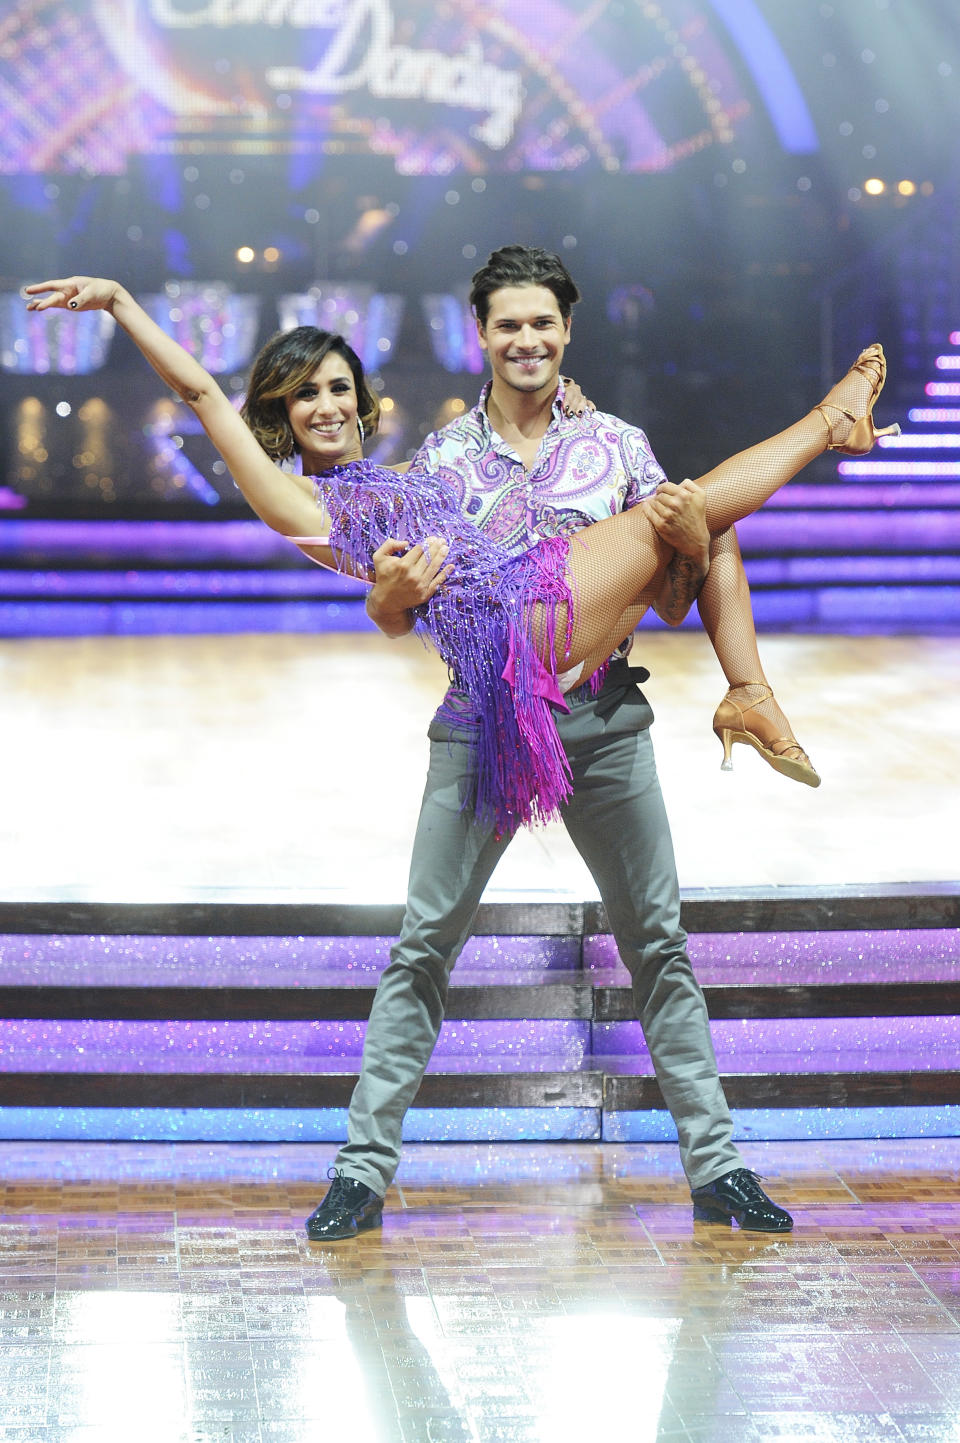 BIRMINGHAM, ENGLAND - JANUARY 21:  Anita Rani (L) and Gleb Savchenko perform during the Strictly Come Dancing Live Tour rehearsals, Strictly Come Dancing Live Tour opens tomorrow, 22nd January at the Barclaycard Arena in Birmingham and then tours the UK until 14th February, at Barclaycard Arena on January 21, 2016 in Birmingham, England.  (Photo by Dave J Hogan/Dave J Hogan/Getty Images)